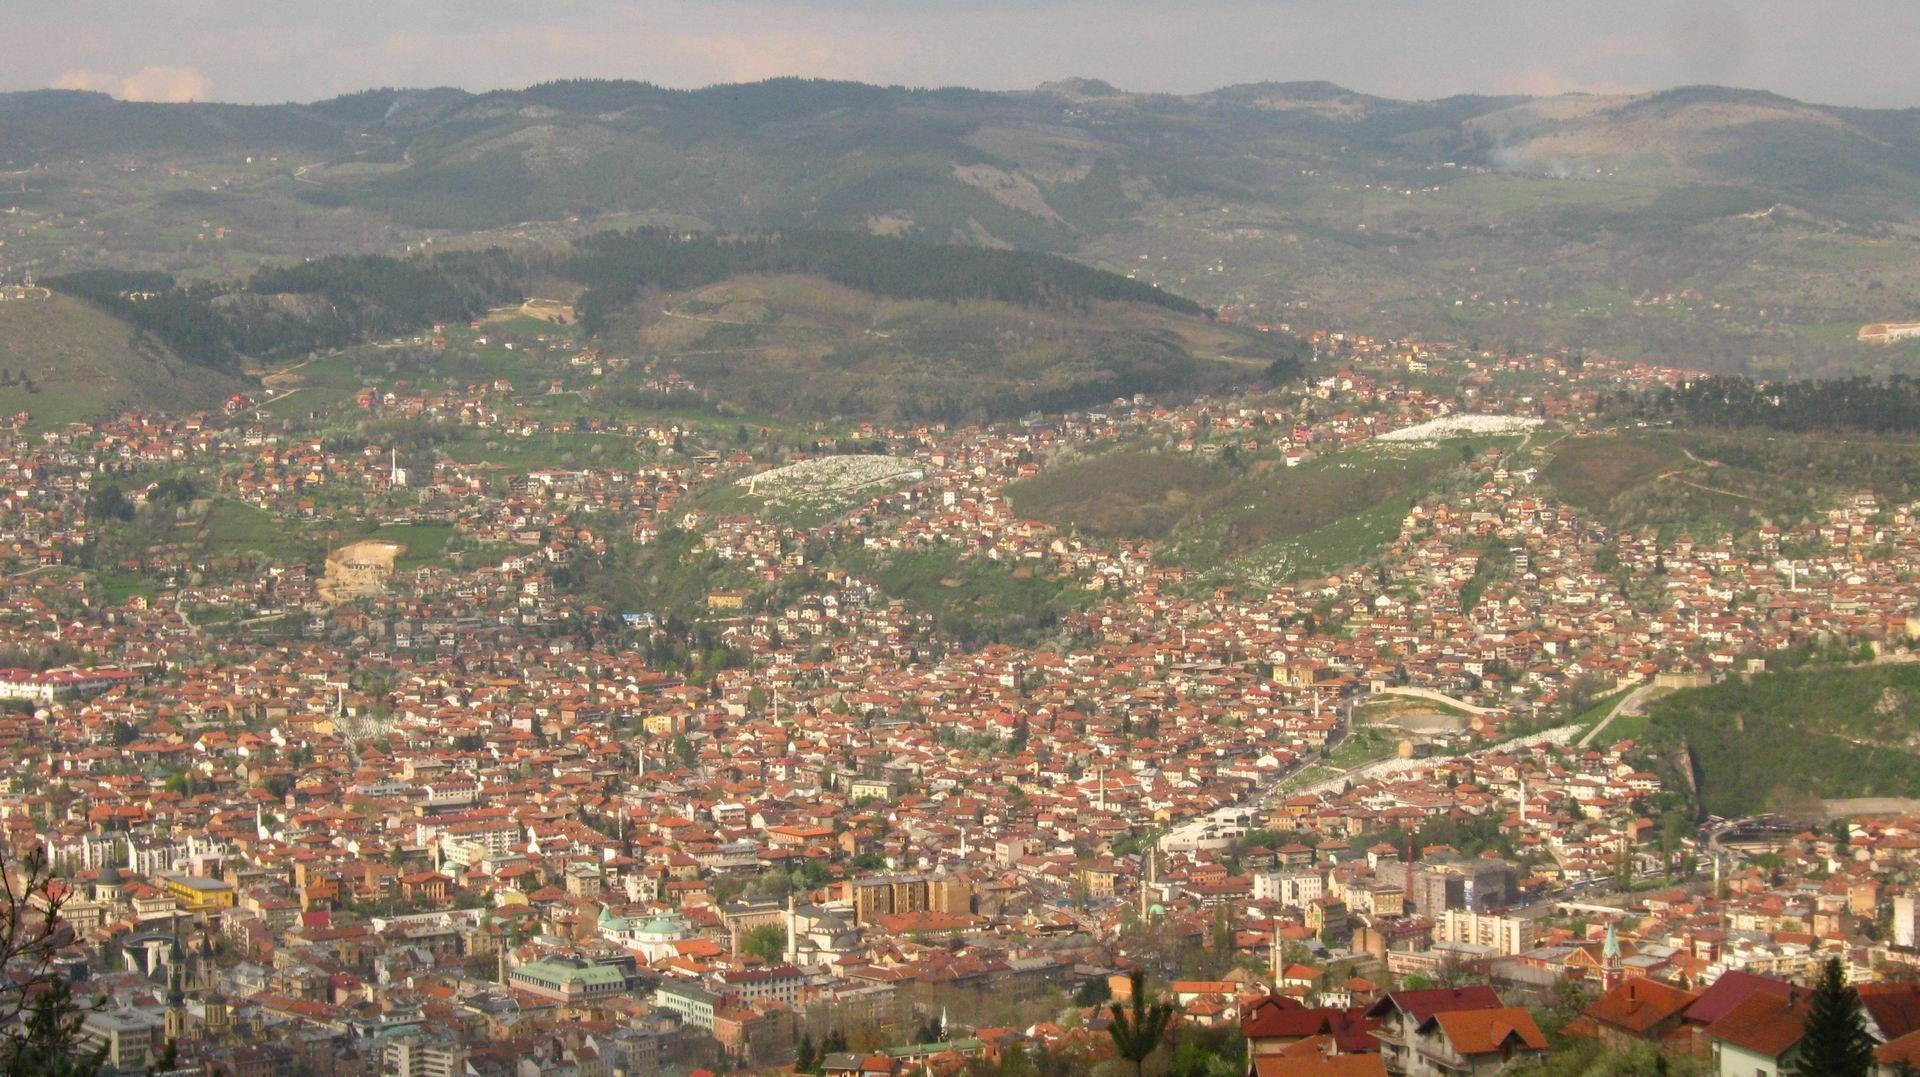 sarajevo bosnia and herzegovina wallpaper | My Travels VII ...